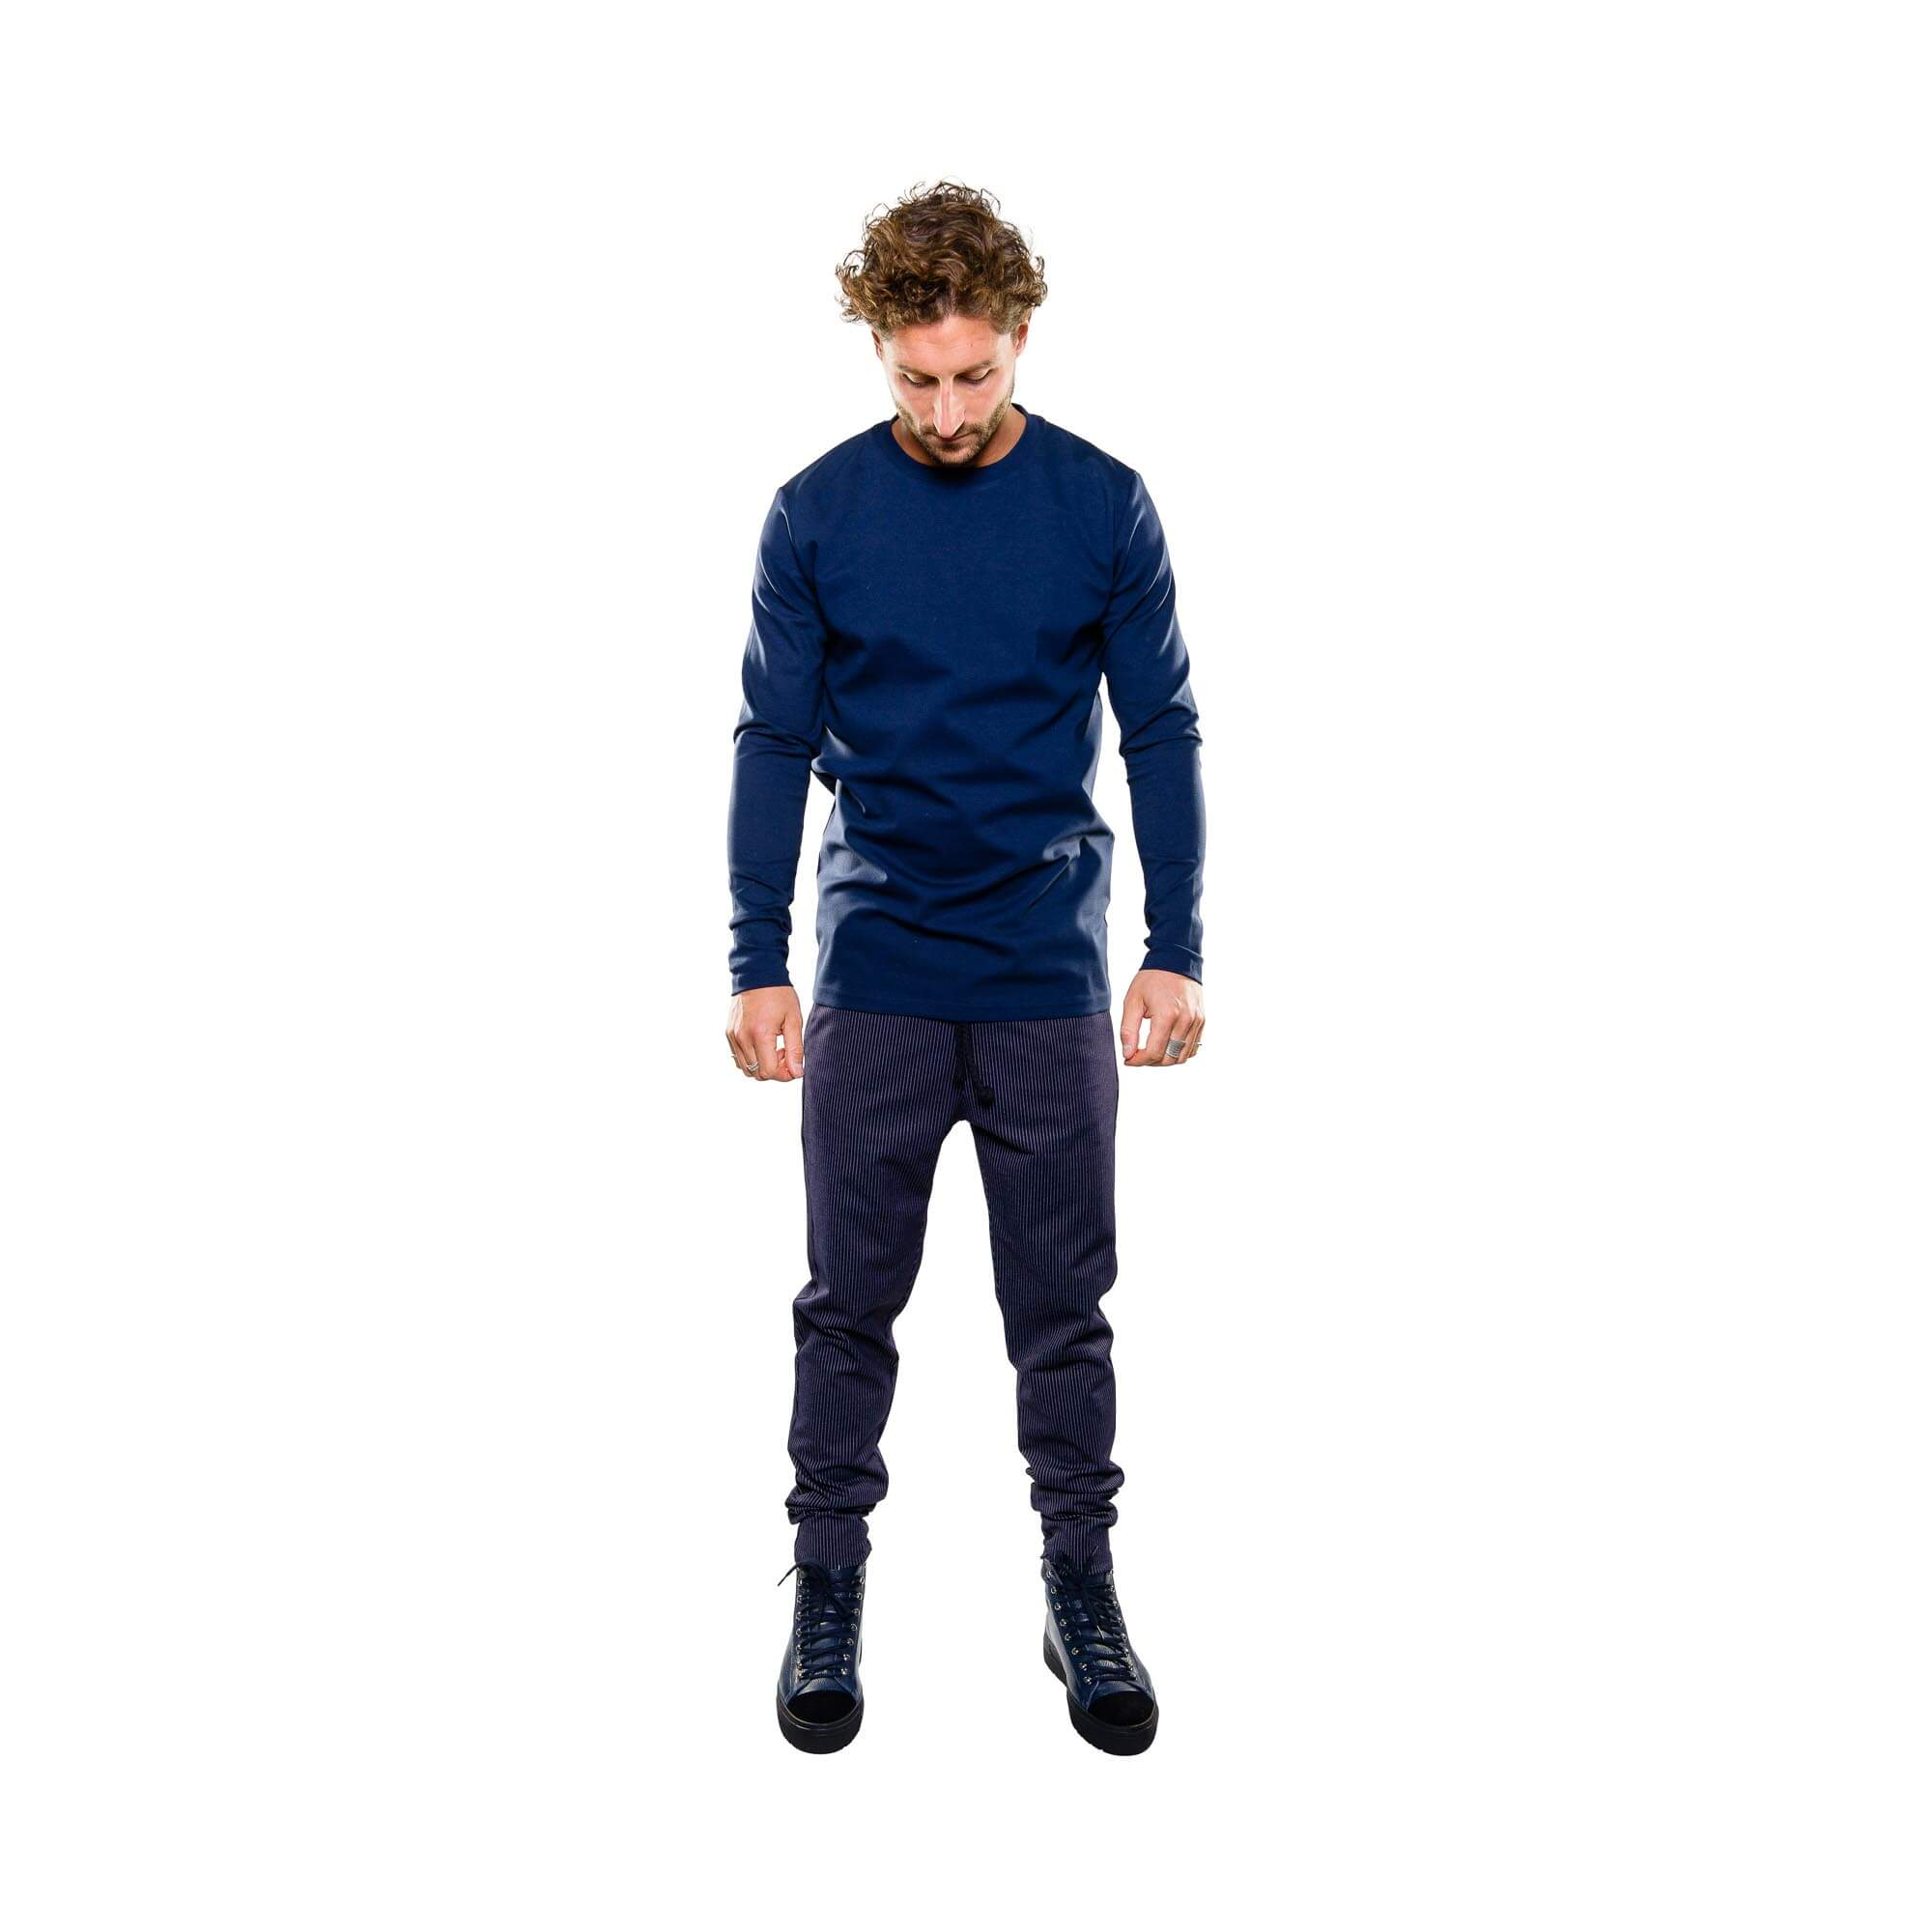 Punto longsleeve blauw - outfit1